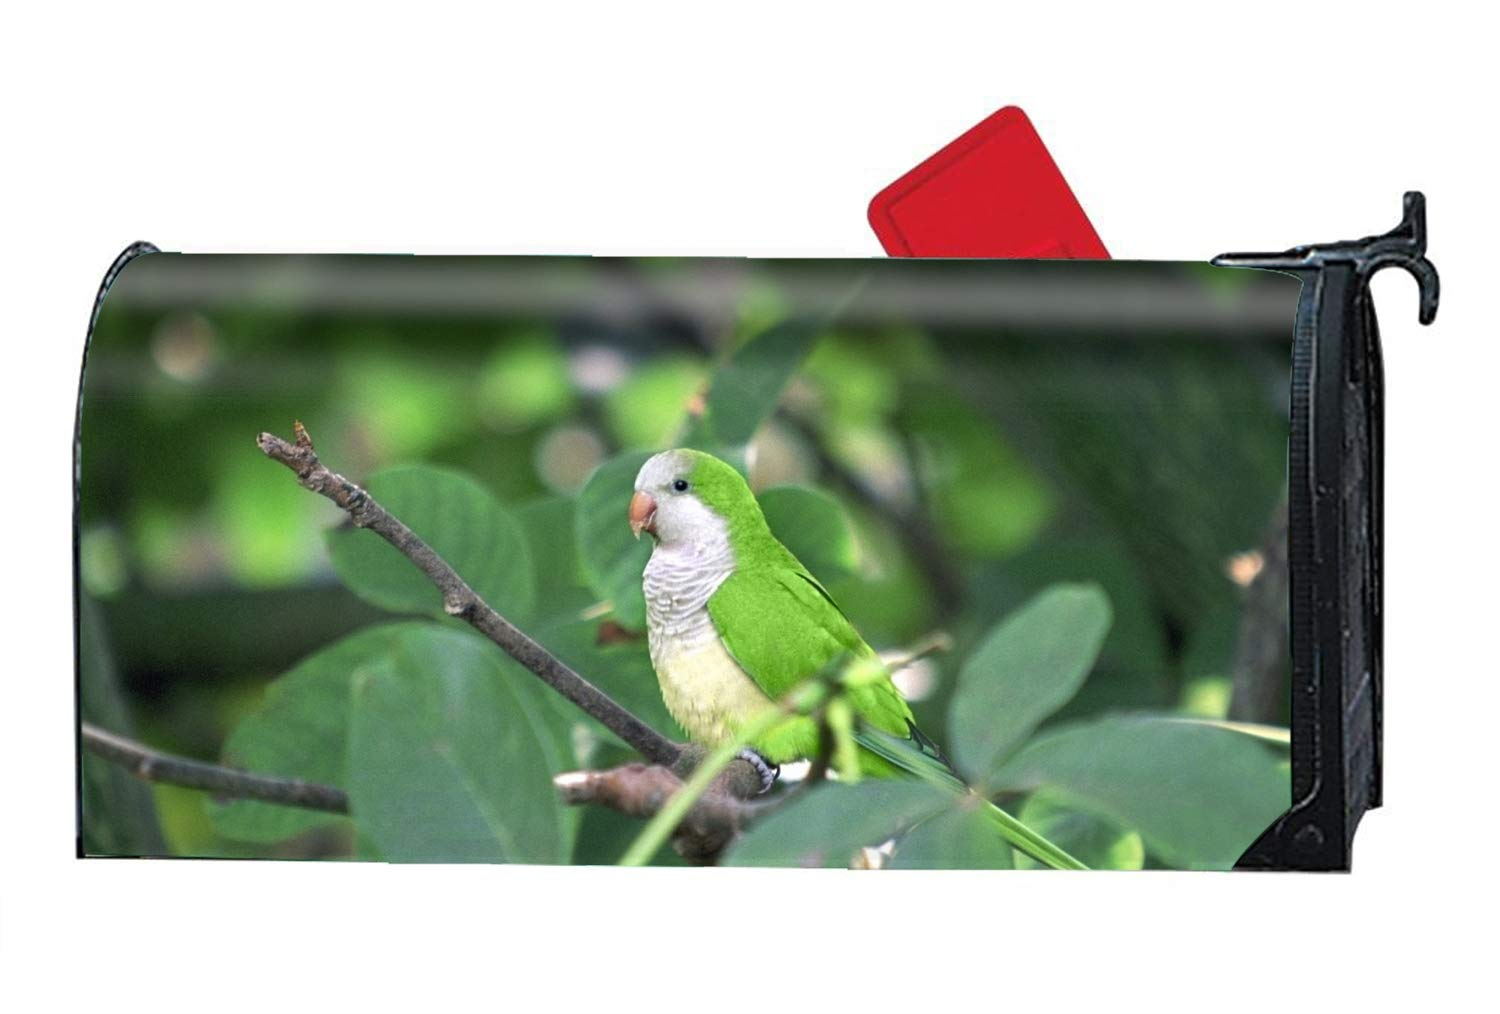 MAILL Animal Parrots Magnetic Mailbox Cover Fits Standard-Sized Mailboxes,9'' W x 21'' L by MAILL